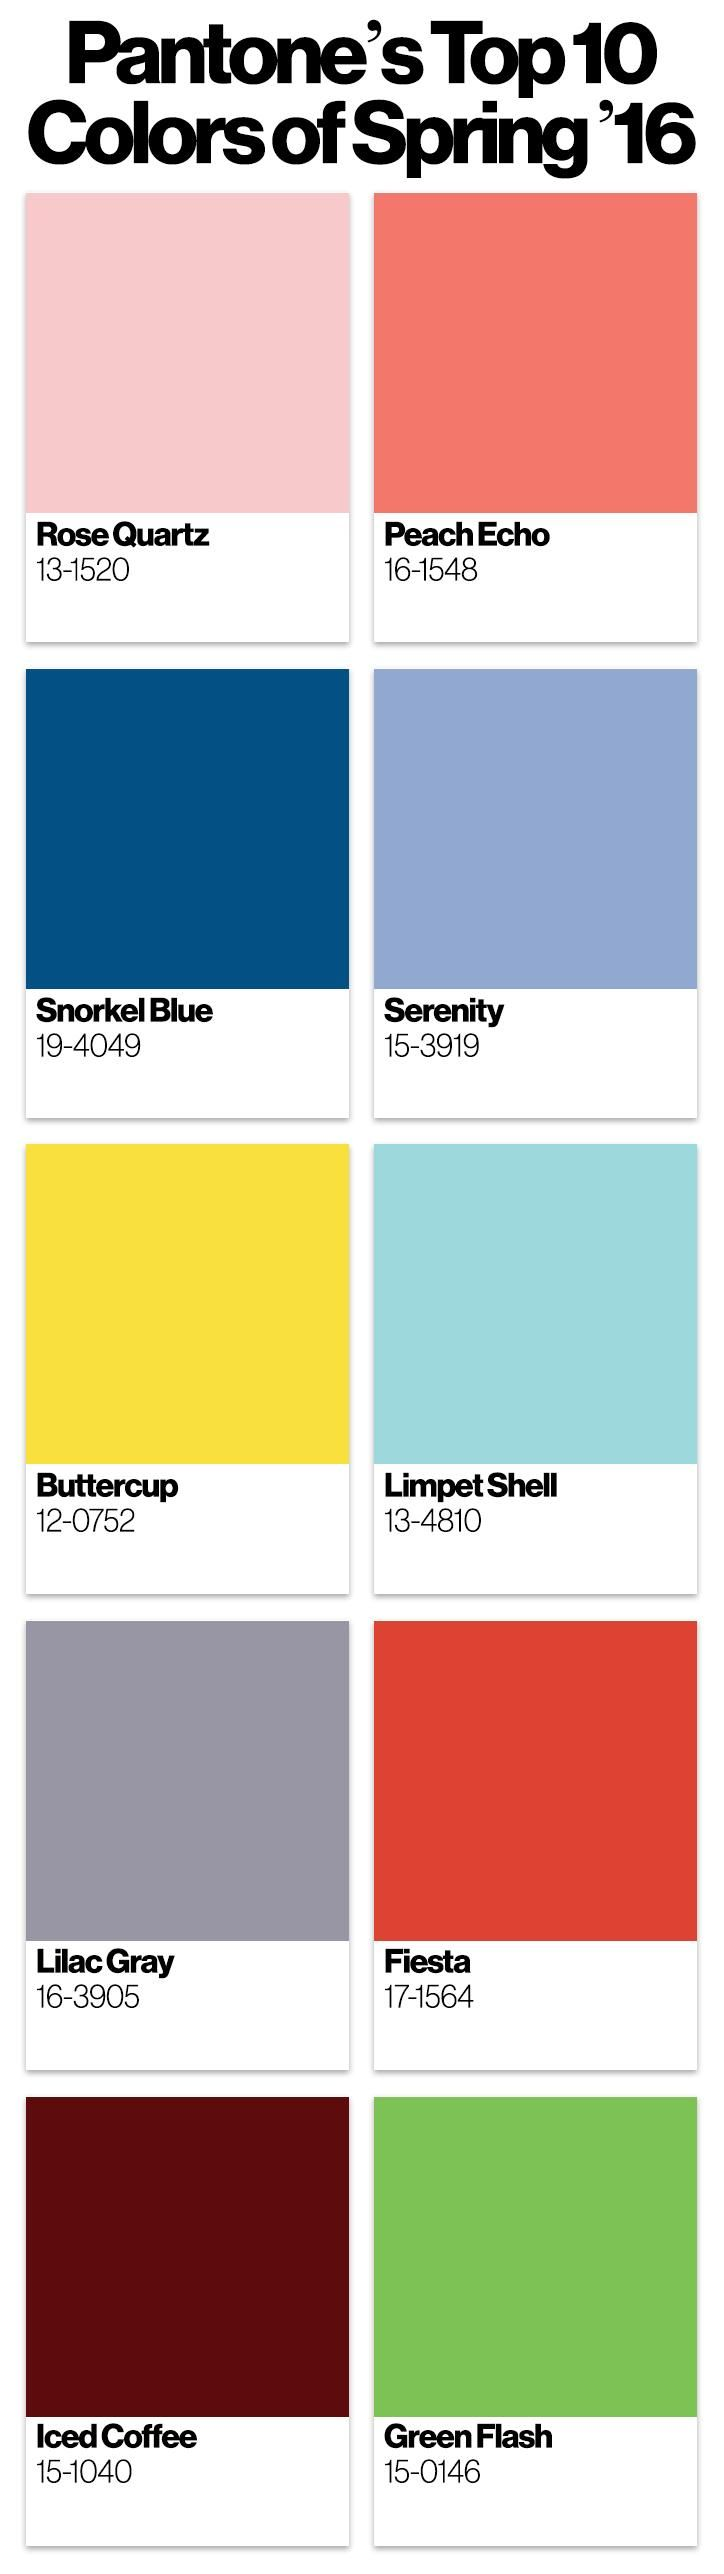 The top 10 colors for Spring 2016